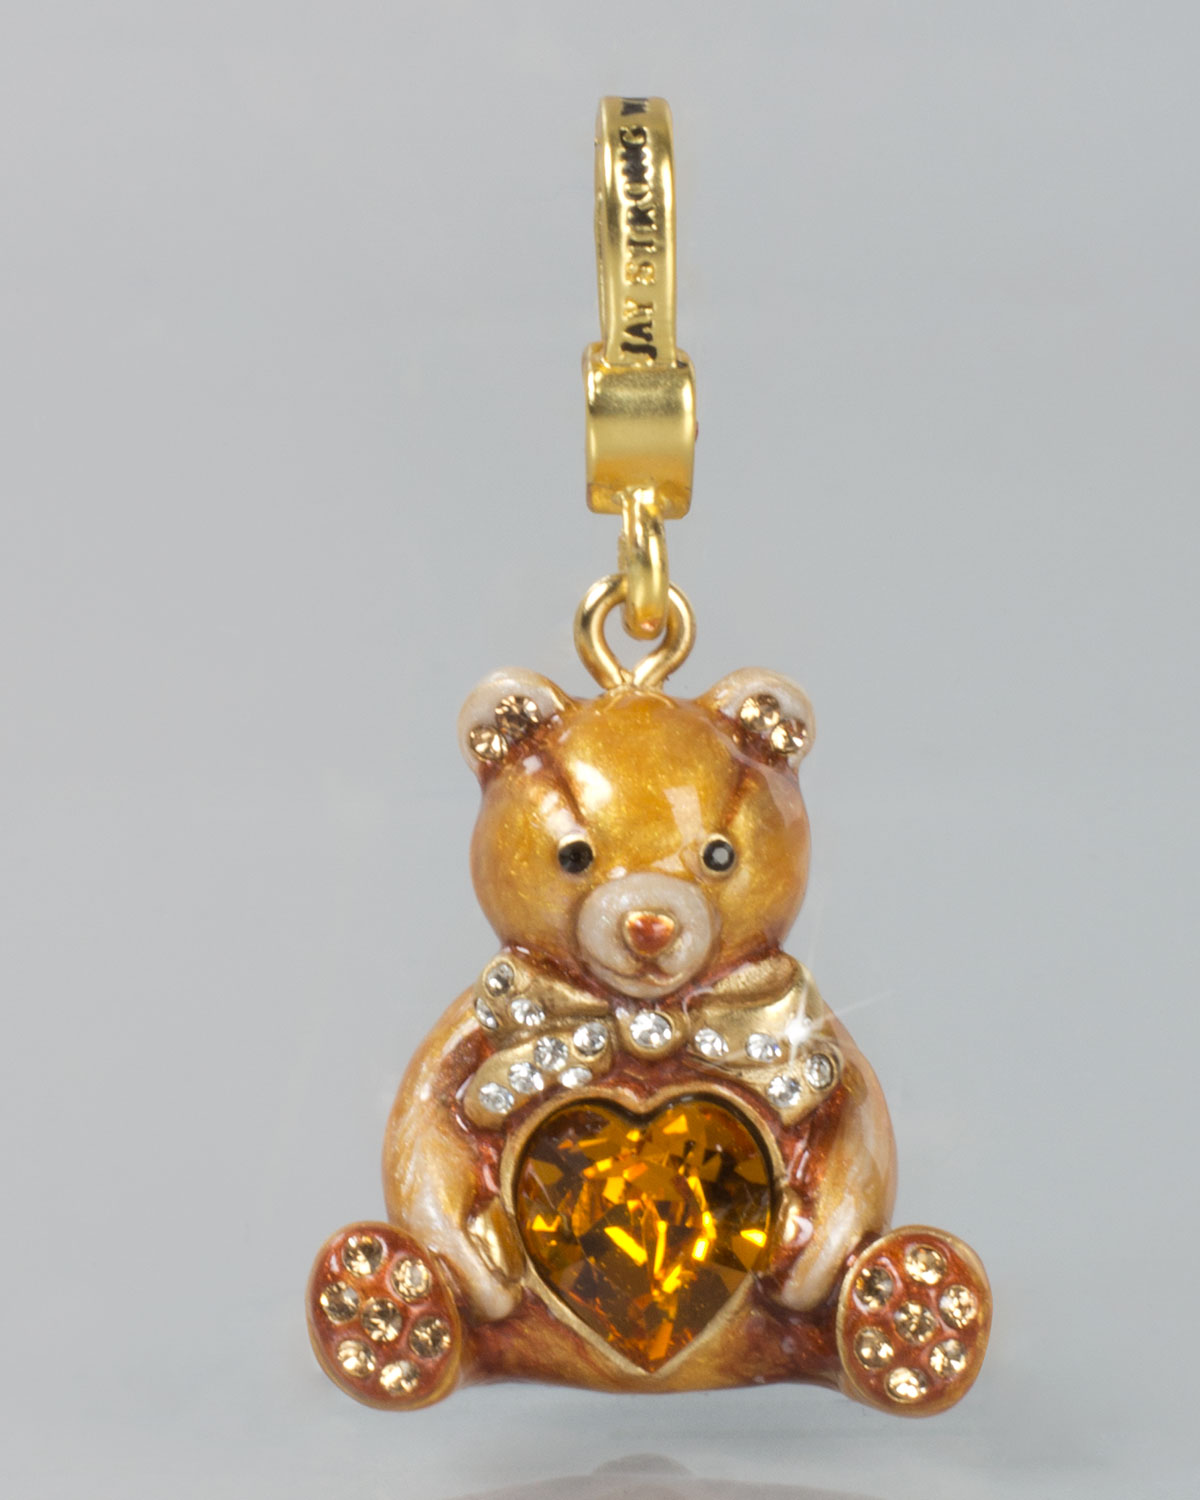 Lyst - Jay Strongwater Teddy Bear With Heart Charm in Metallic